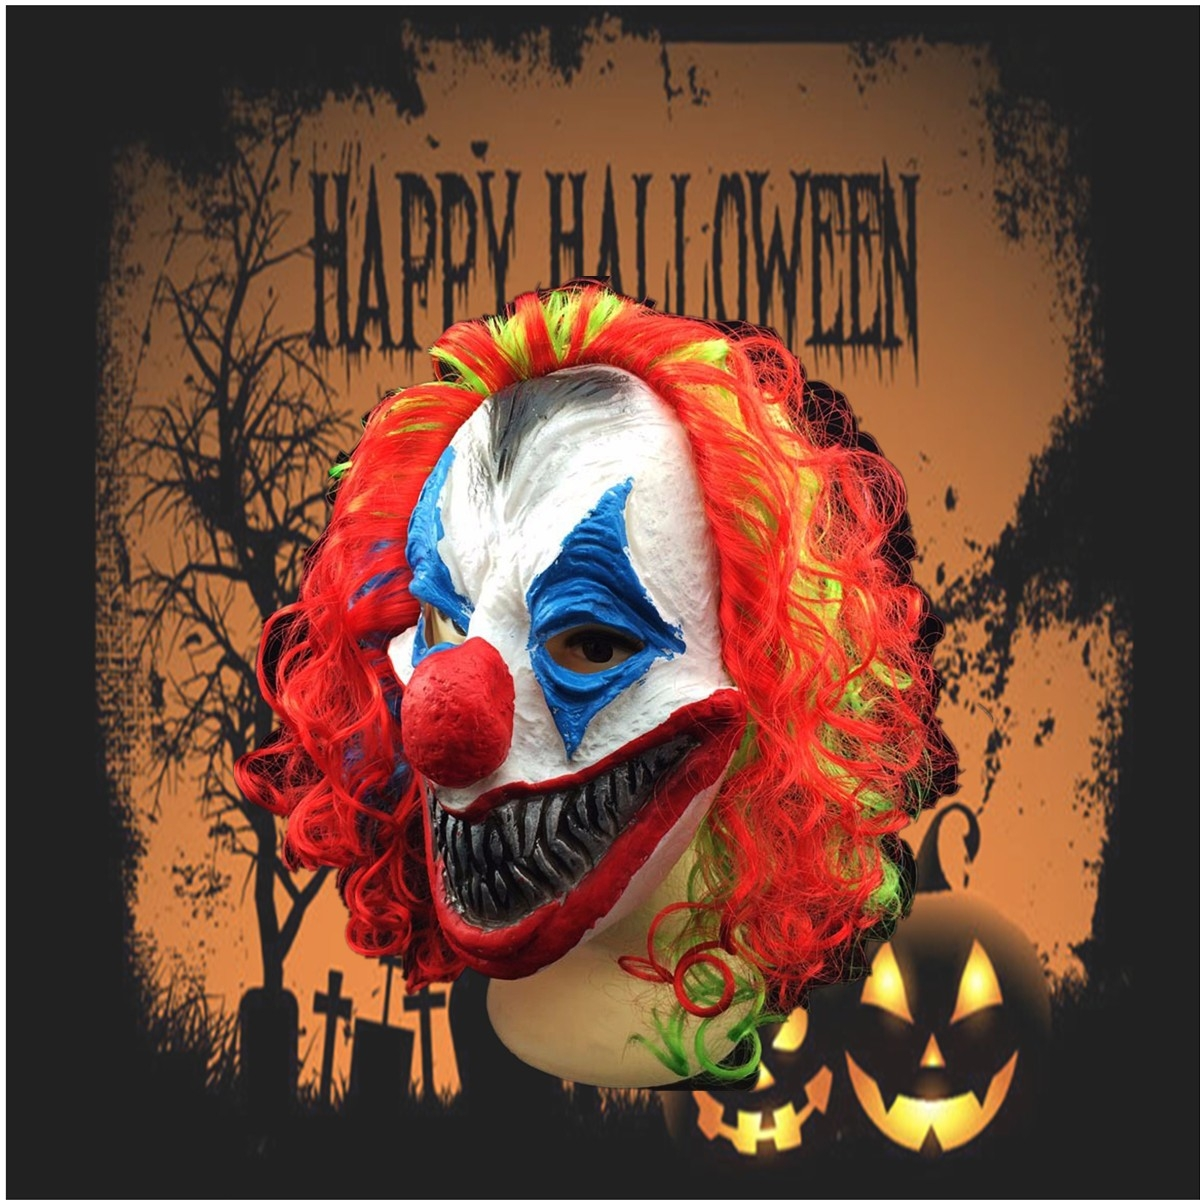 New Halloween Mask Creepy Clown Head Adult Costume Party Fancy Prop Random Colo